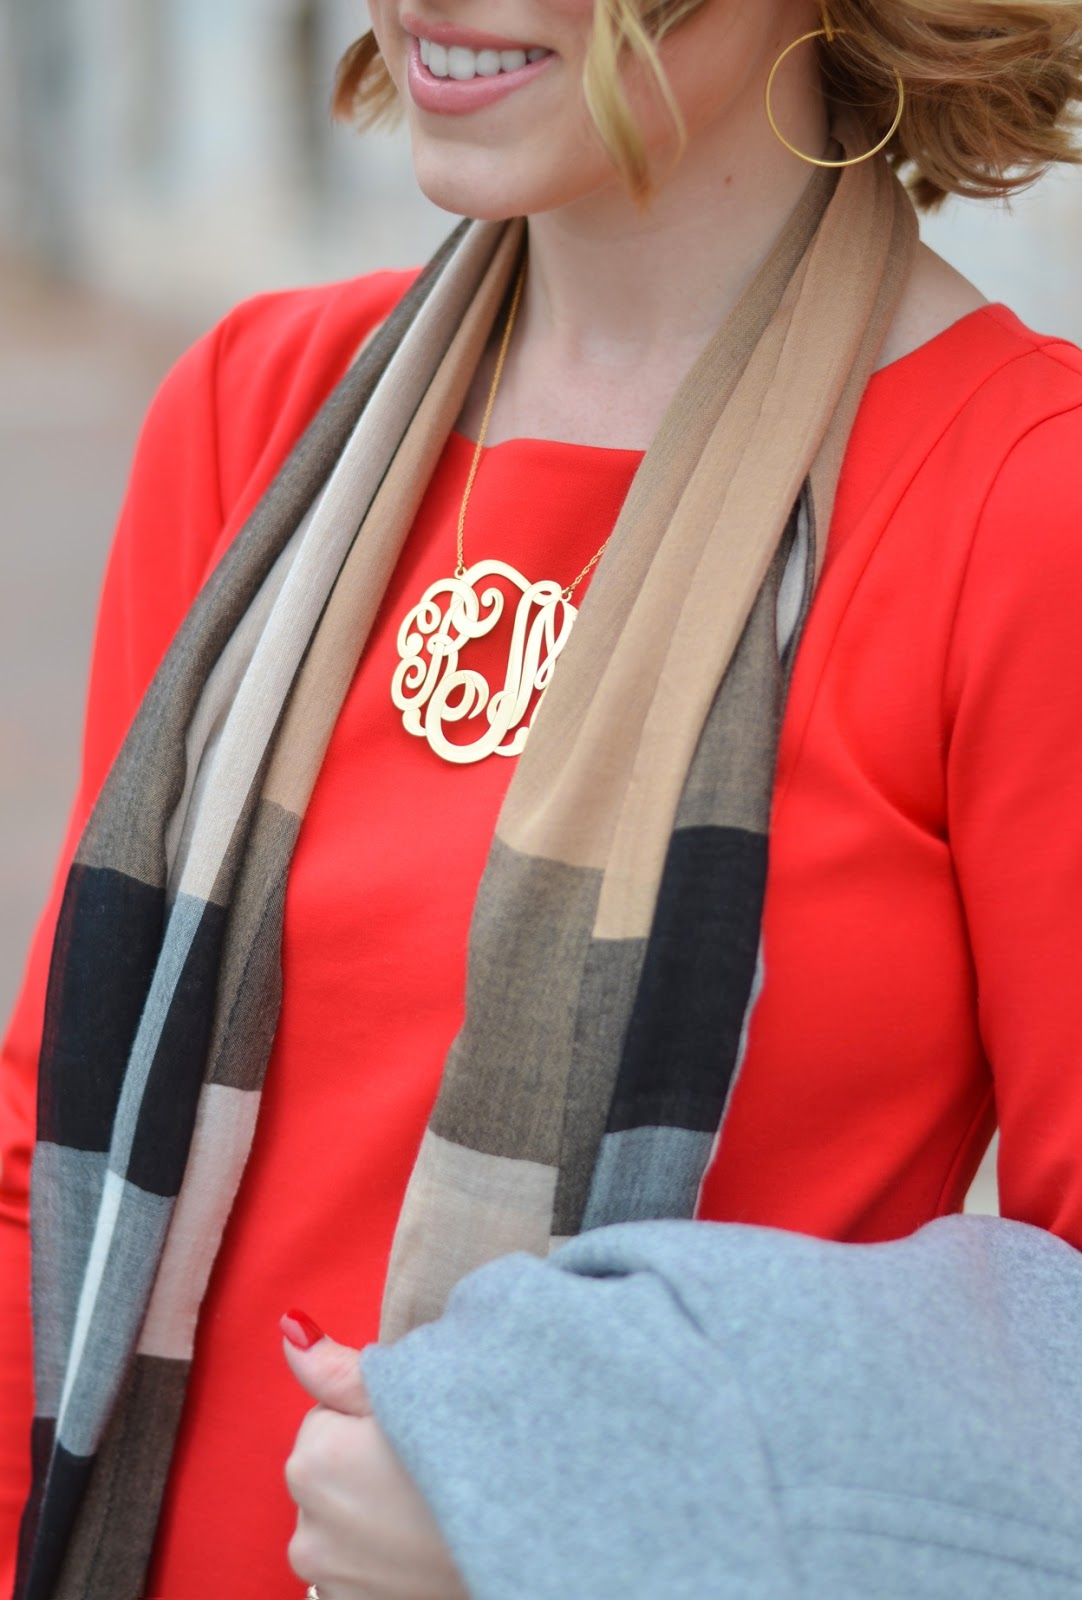 Large Monogram Necklace - Something Delightful Blog